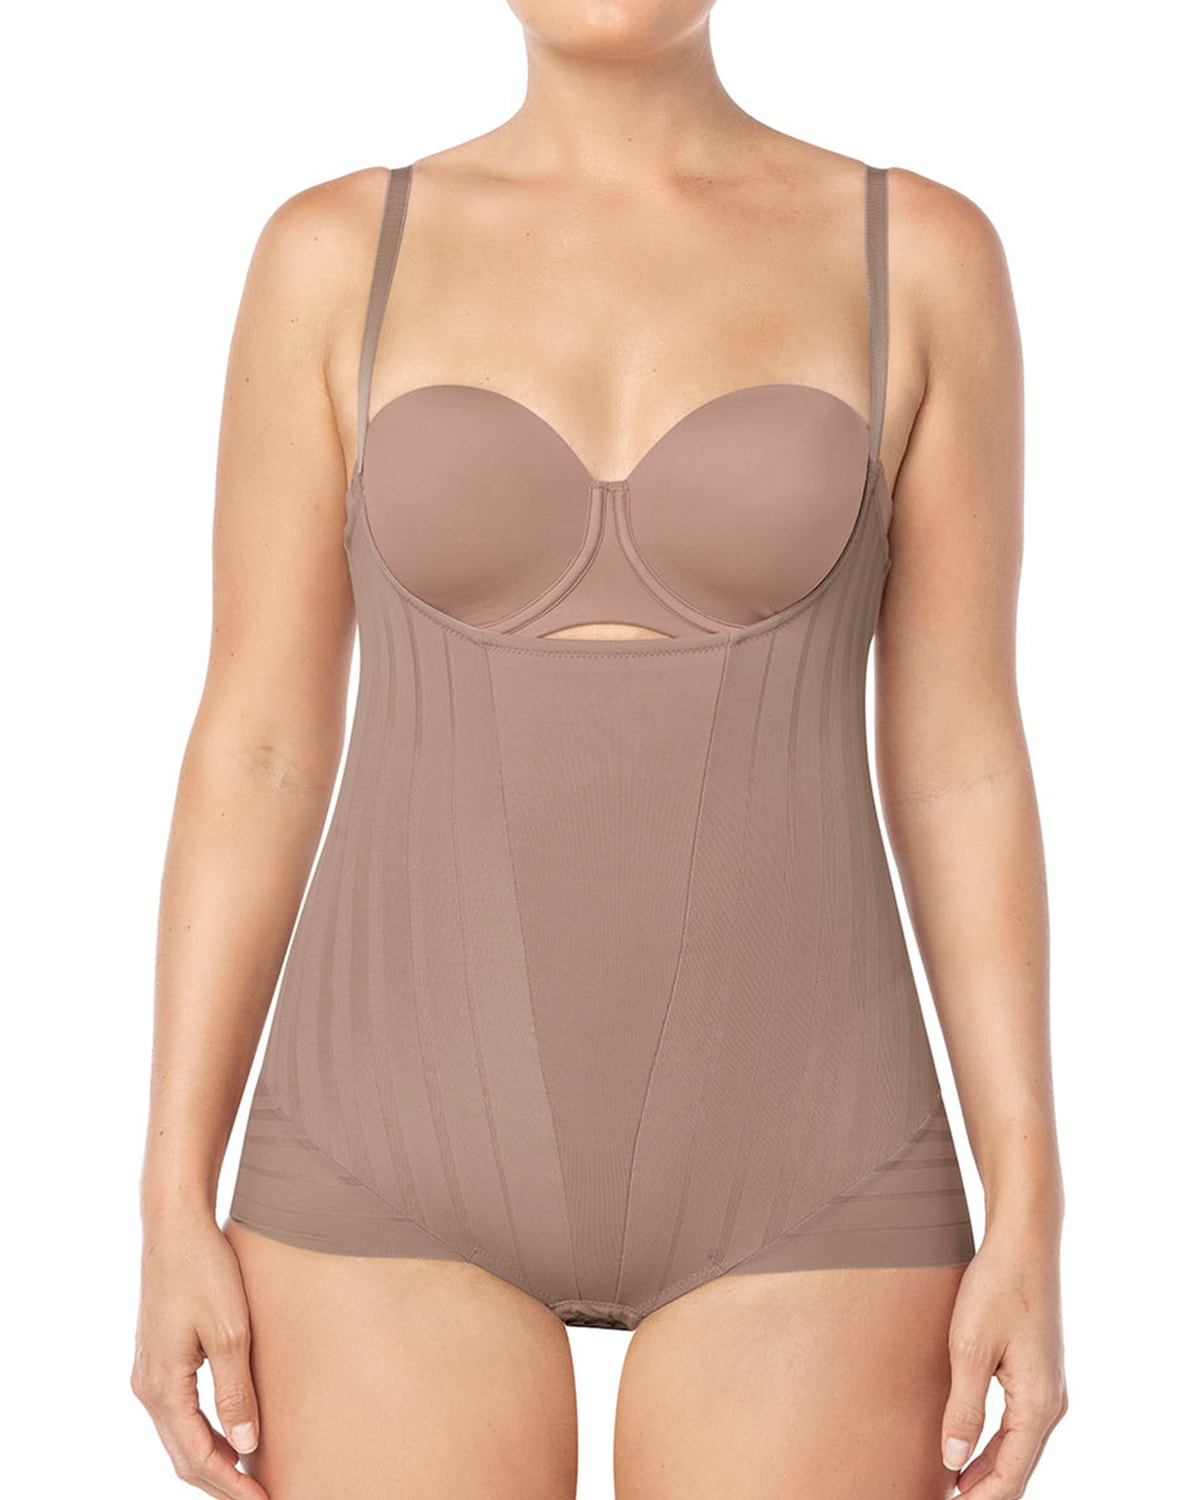 1906279ee Undetectable Firm Control Bodysuit Shaper